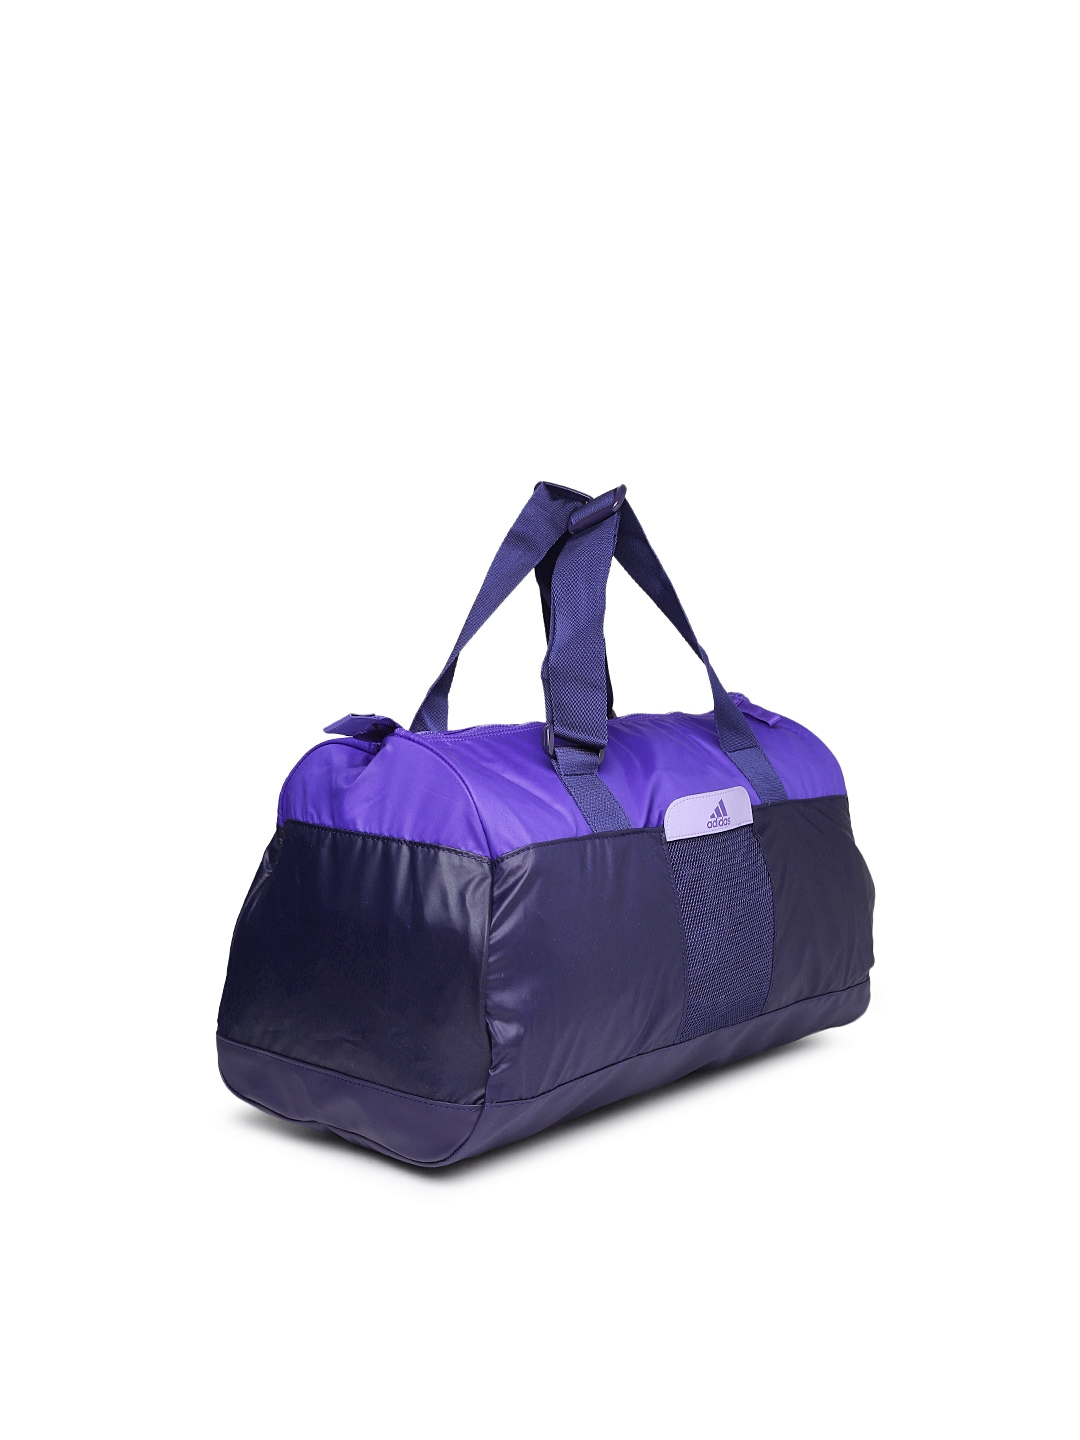 Model The Brisk Diagram We Got Can Help You To Pickthe Best Yoga Bag Adidas That You Will Become Happy 1 Adidas Womens Squad Iii Duffel Bag, Heather Print Deepest SpaceBlackShock PinkShock Slime, One Size Click Link To